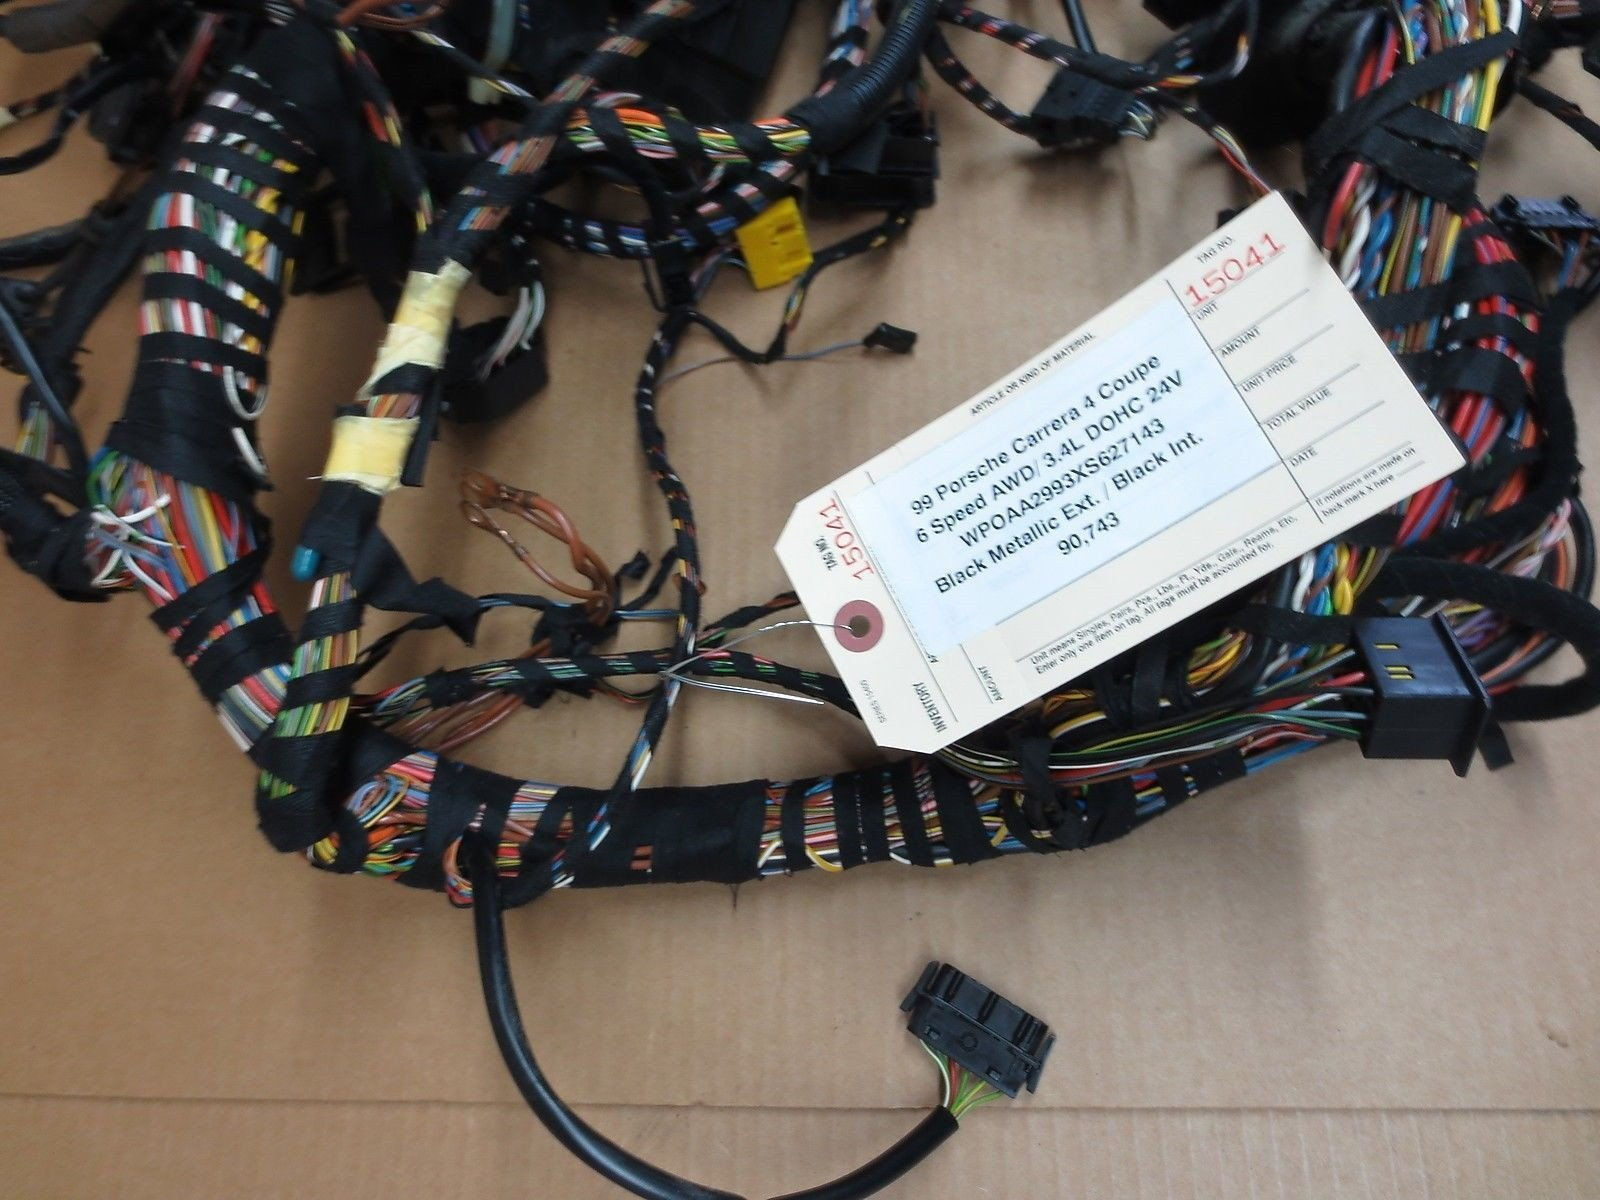 99 Porsche 911 Carrera 4 Coupe AWD 996 MAIN WIRING HARNESS WIRE loom 90,743